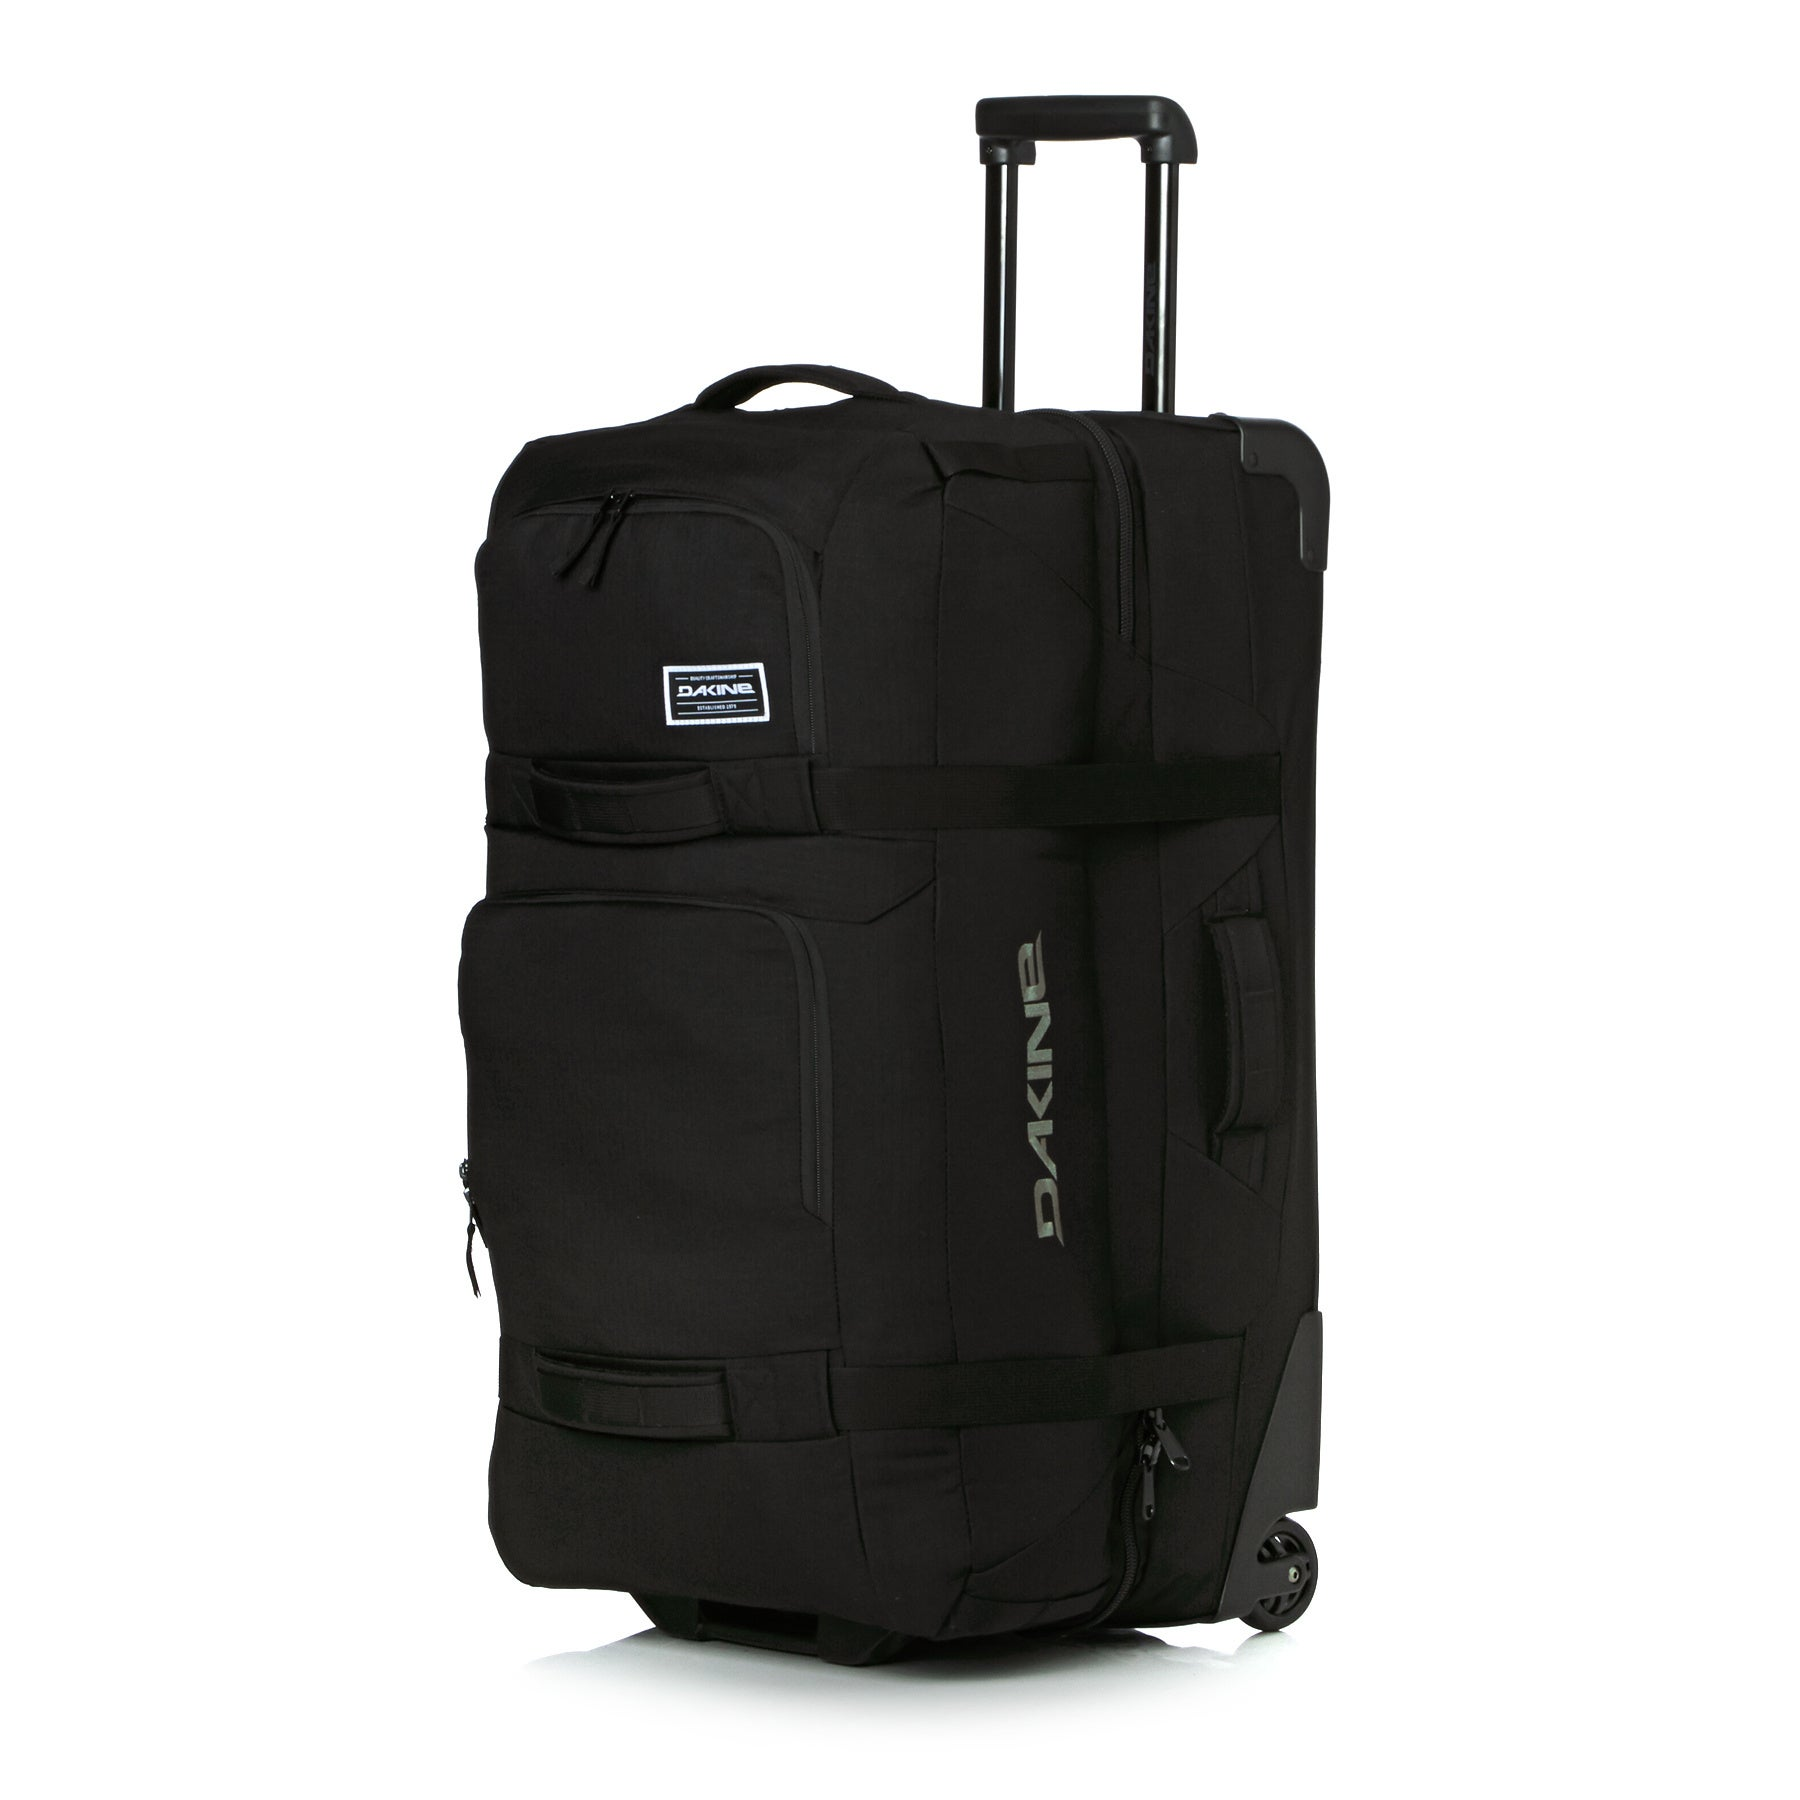 Dakine Split Roller 110 Large Luggage - Black